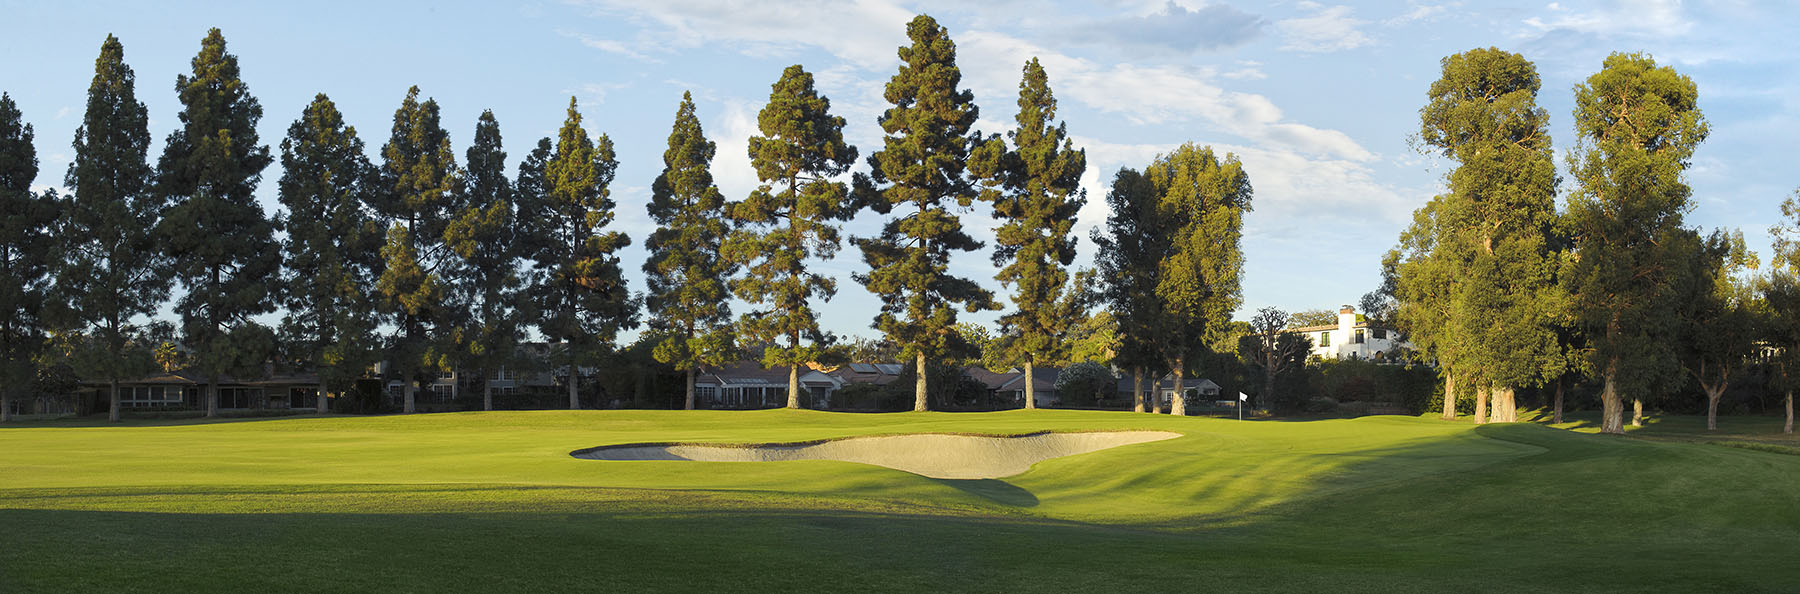 Golf Course Image - Riviera Country Club No. 1